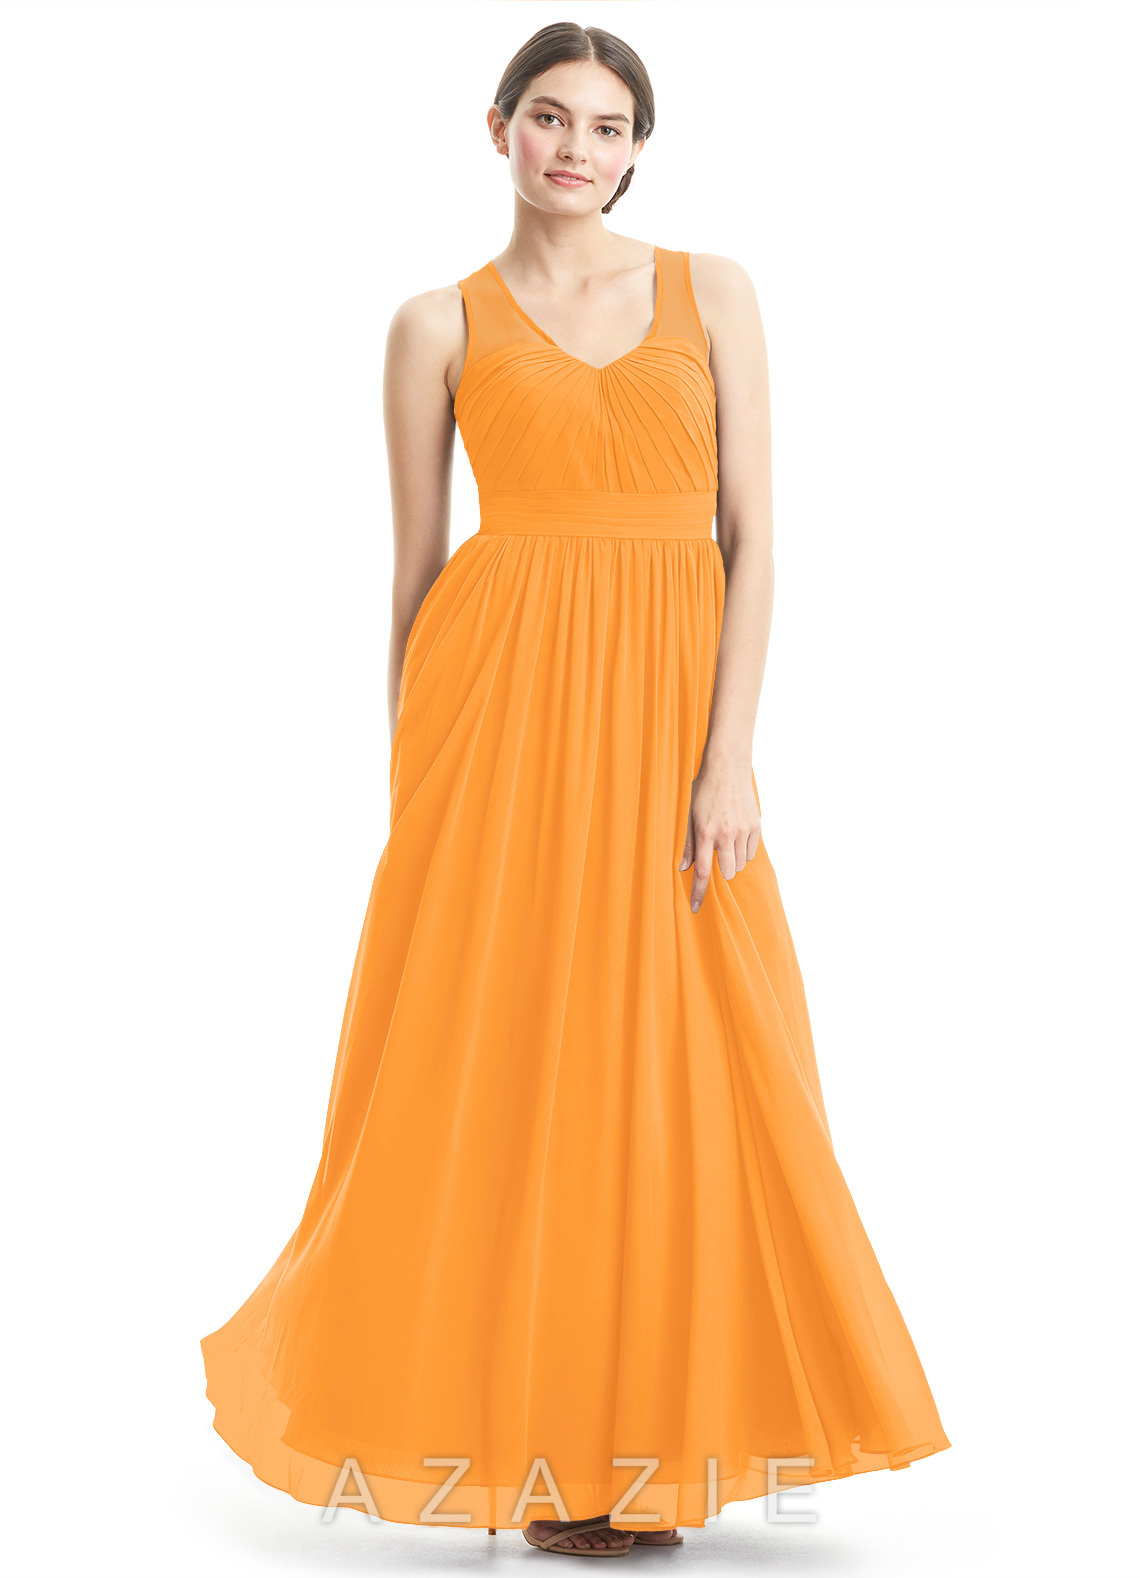 6bf3dc998fd Azazie Raquel Bridesmaid Dress